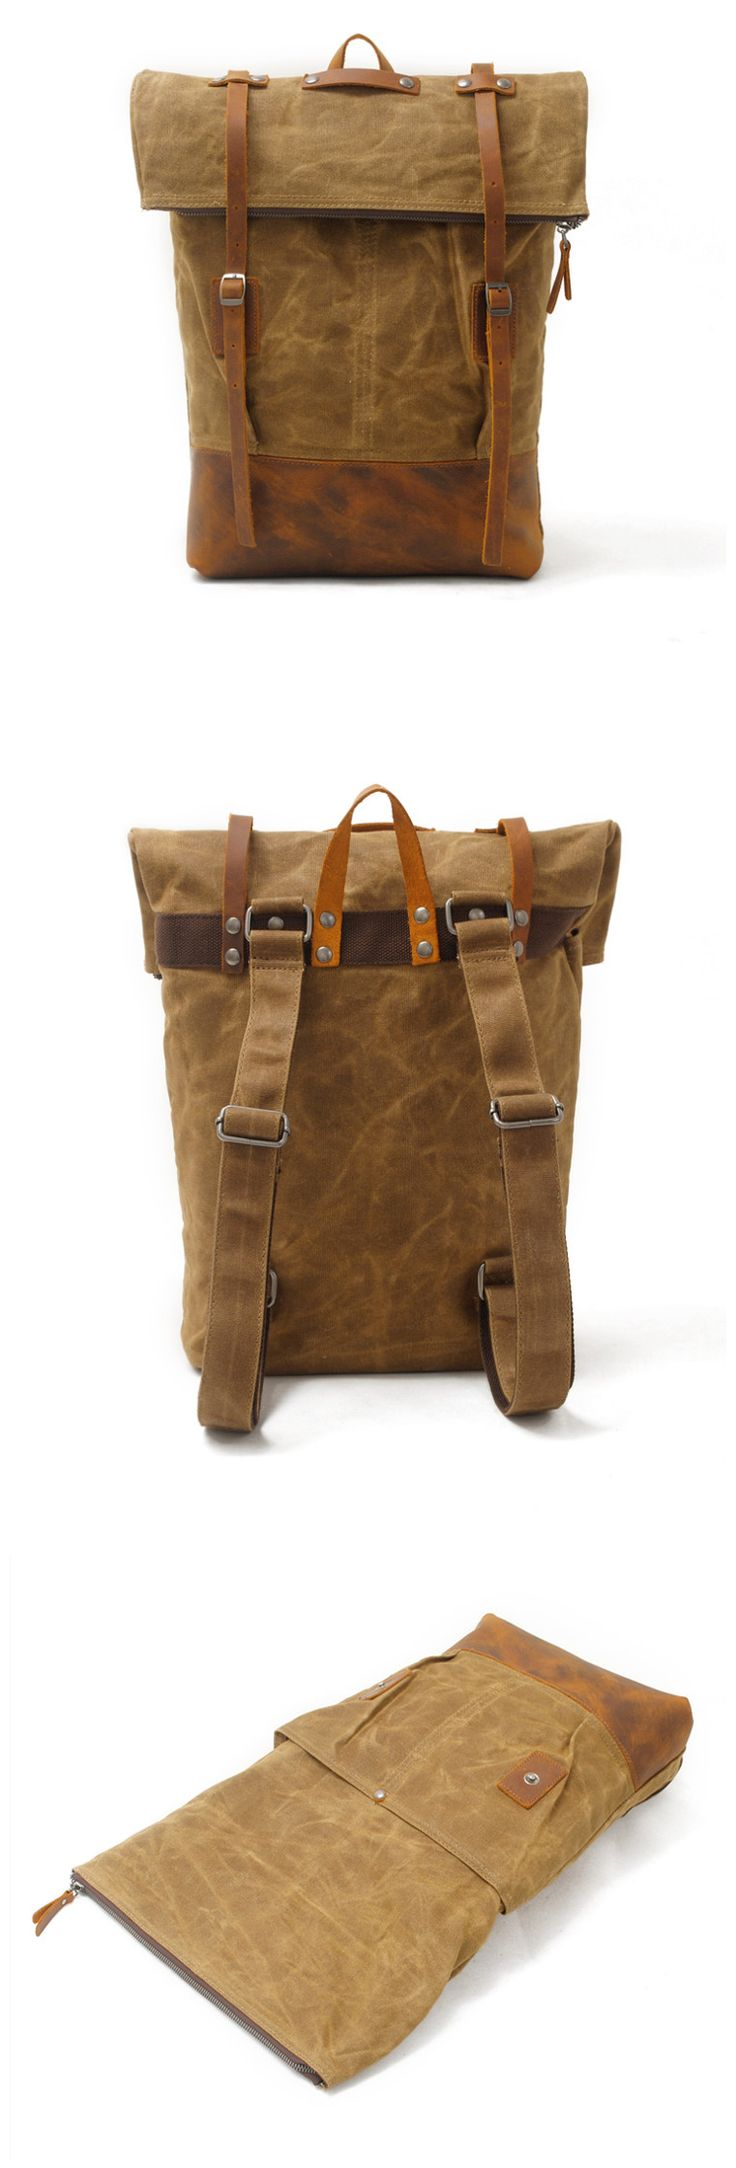 Waxed Canvas Leather Backpack Travel Backpack Rucksack Features: • Crazy horse leather • Solid Quality Hardware • 16OZ waxed canvas ********************************************** Dimensions: Length: 3